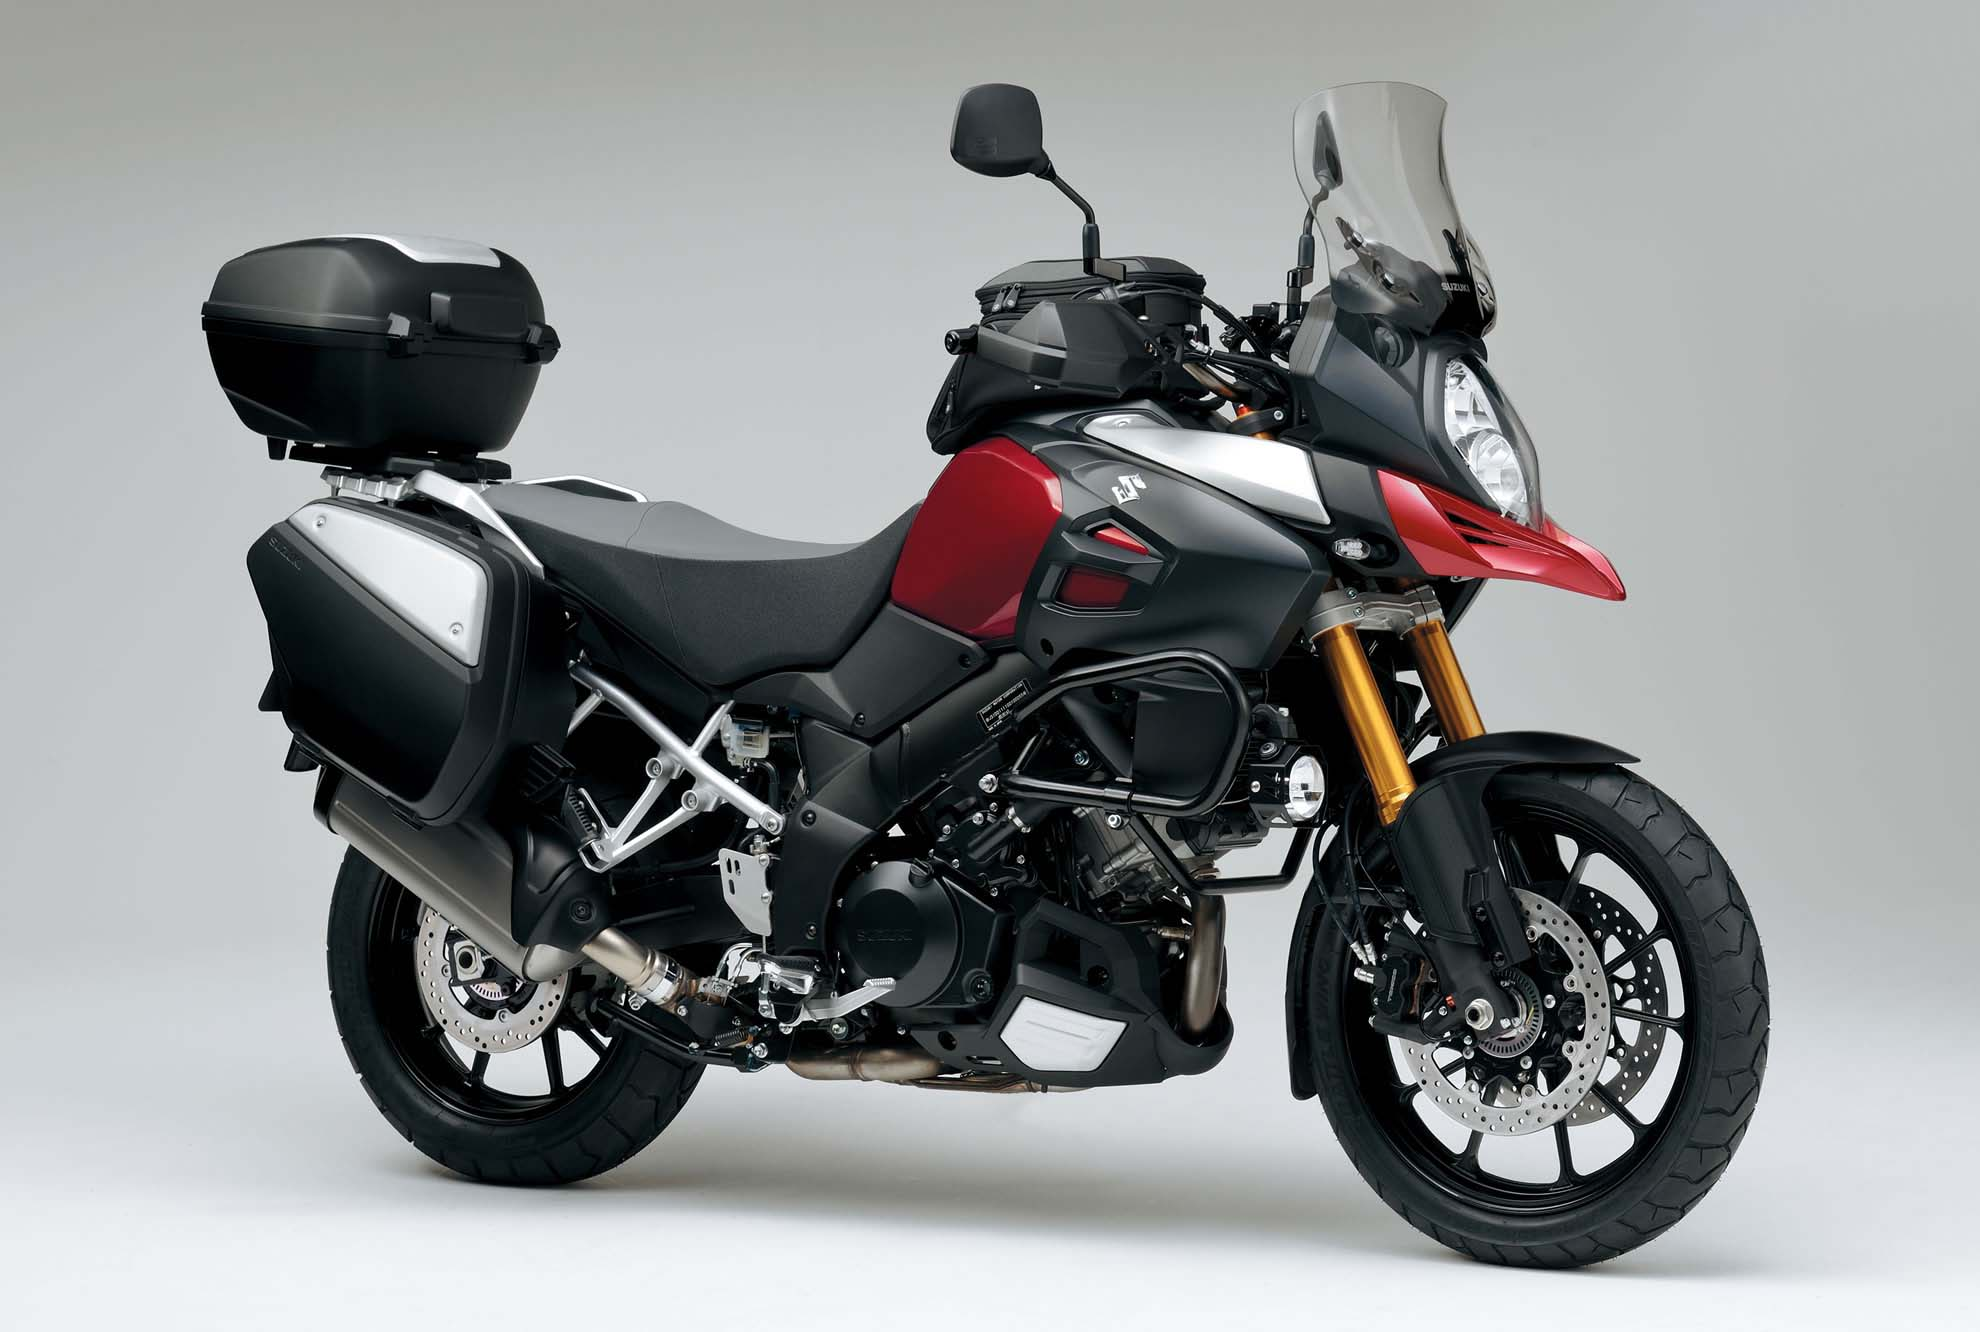 2014 suzuki v strom 1000 details emerge asphalt rubber. Black Bedroom Furniture Sets. Home Design Ideas